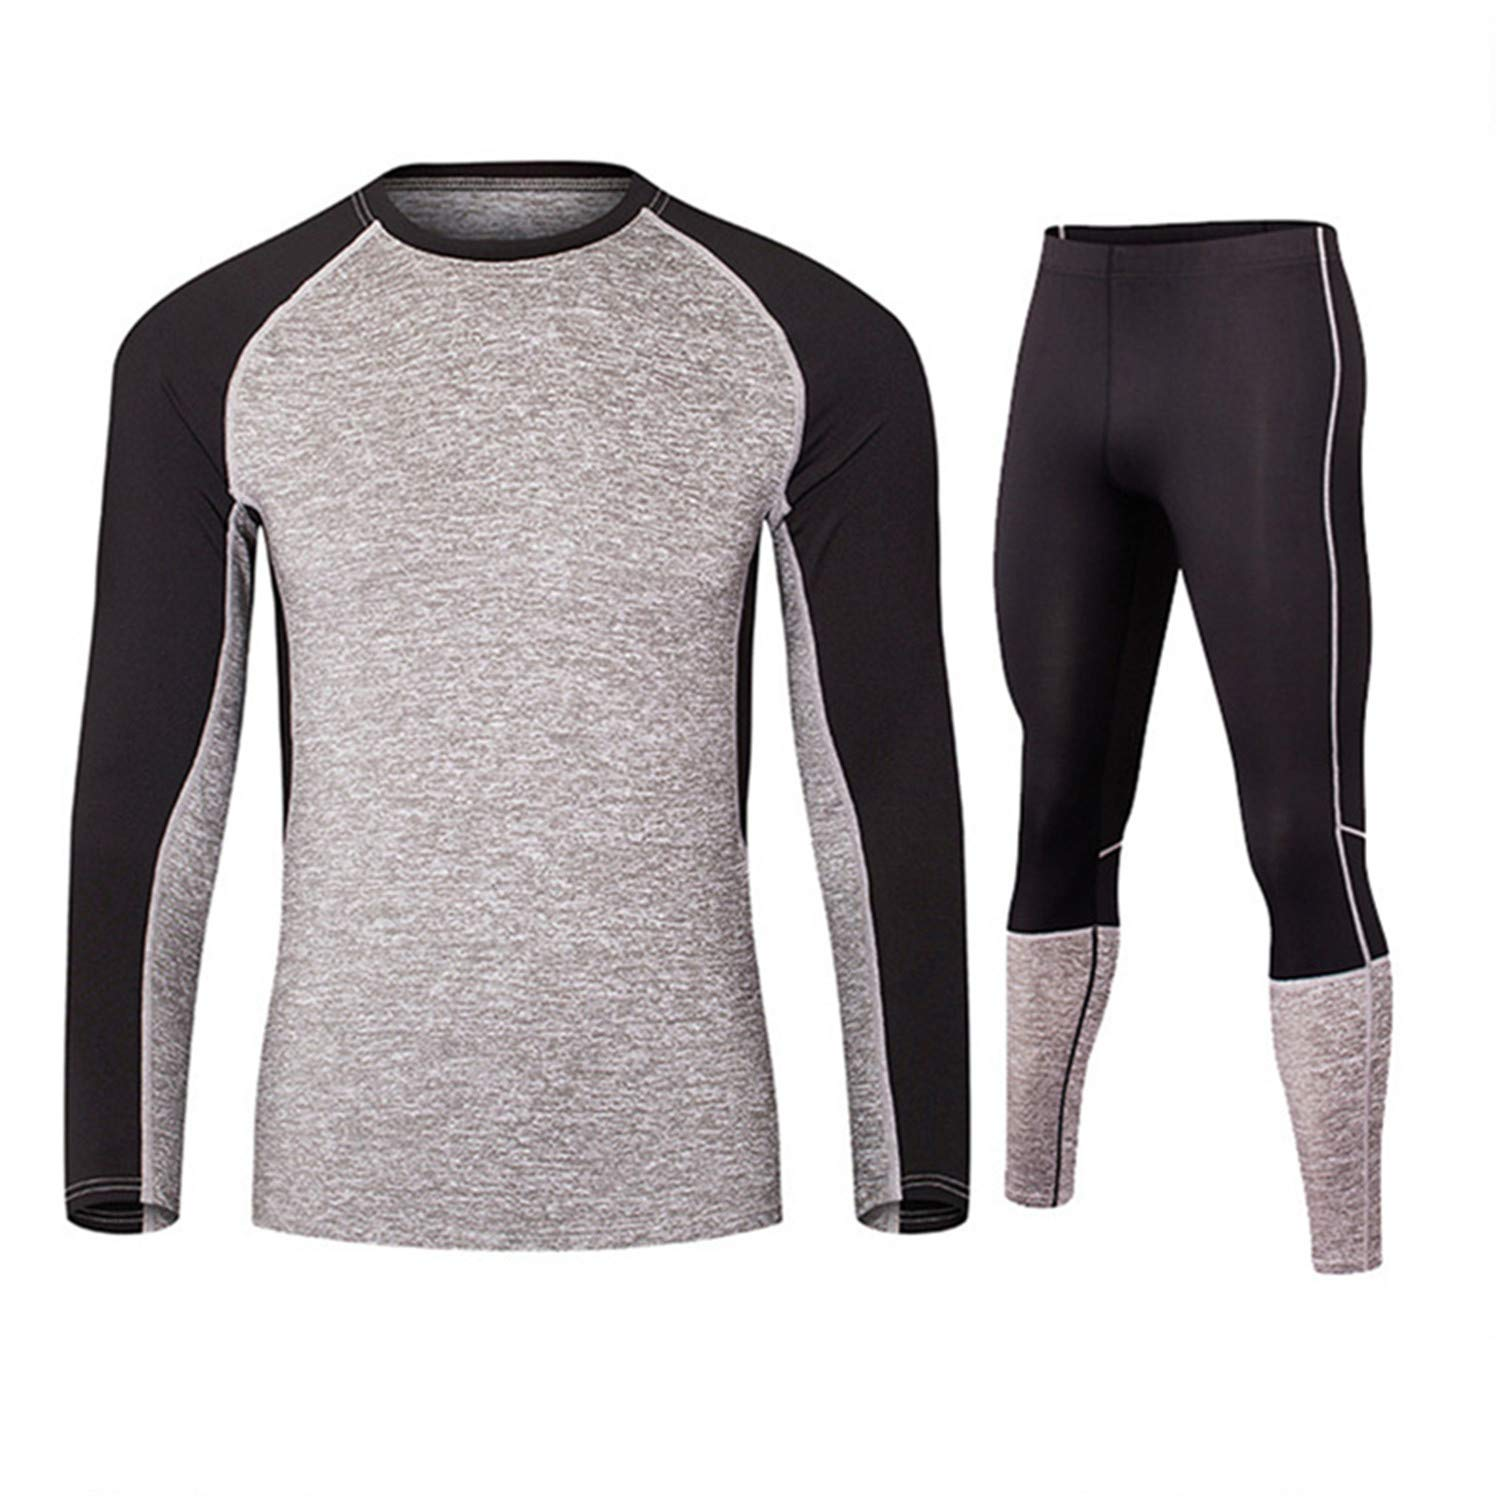 Winter Men Thermal Underwear Sets Fleece Warm Long Breathable Thermo Underwear Quick Dry Top and Pant Suit Tight